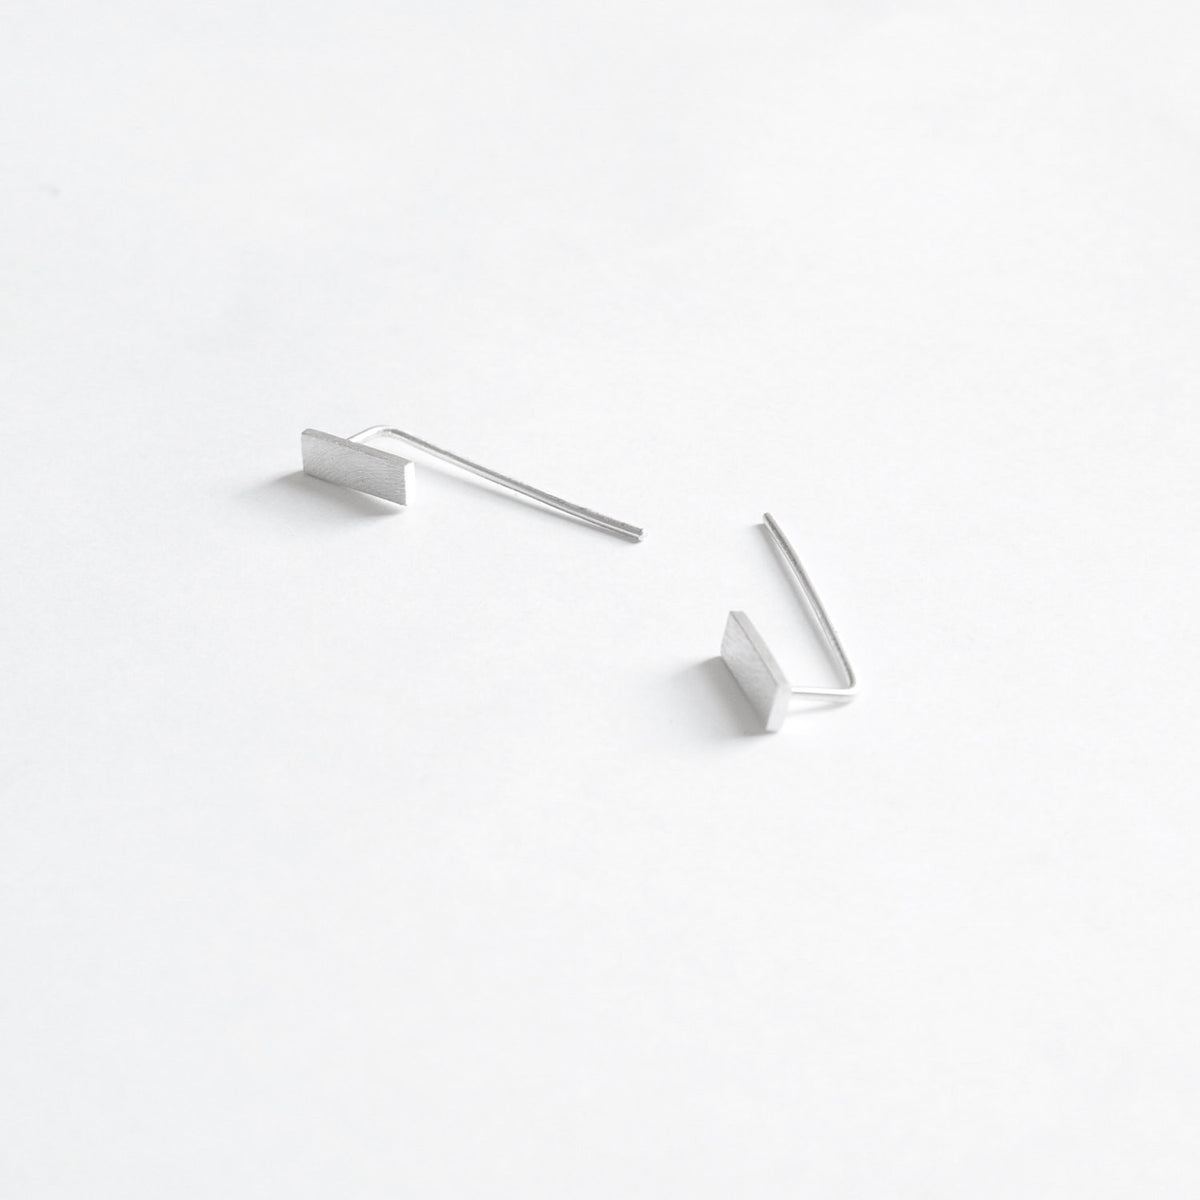 Understated Yet Elegant Hand-Made Sterling Silver Rectangle Flat Bar Threader Earrings - 0242 - Virginia Wynne Designs